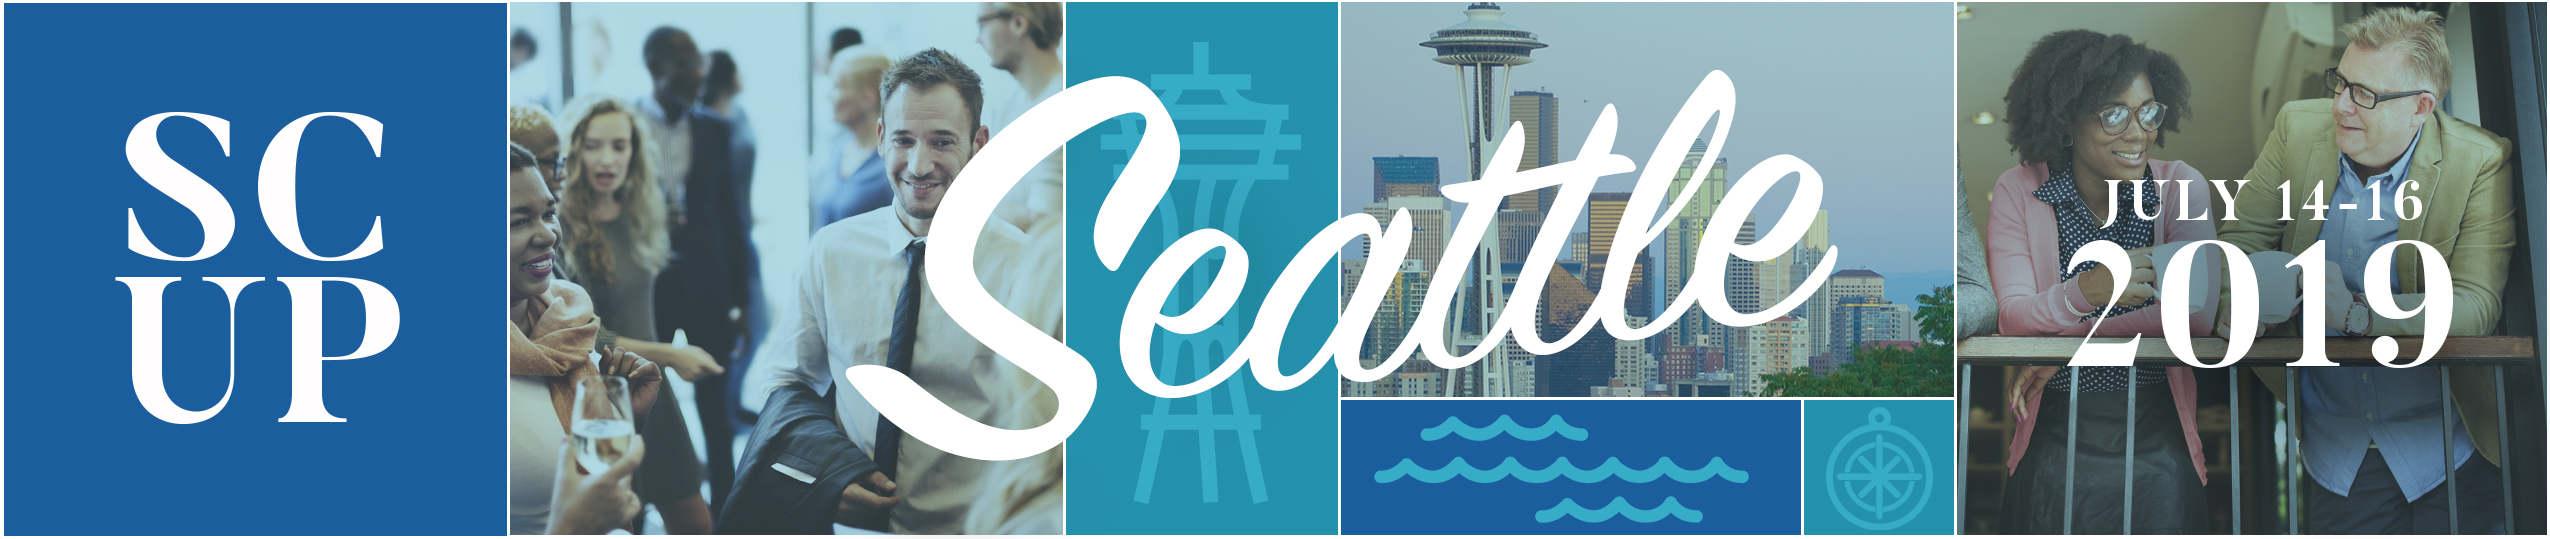 SCUP19 Seattle